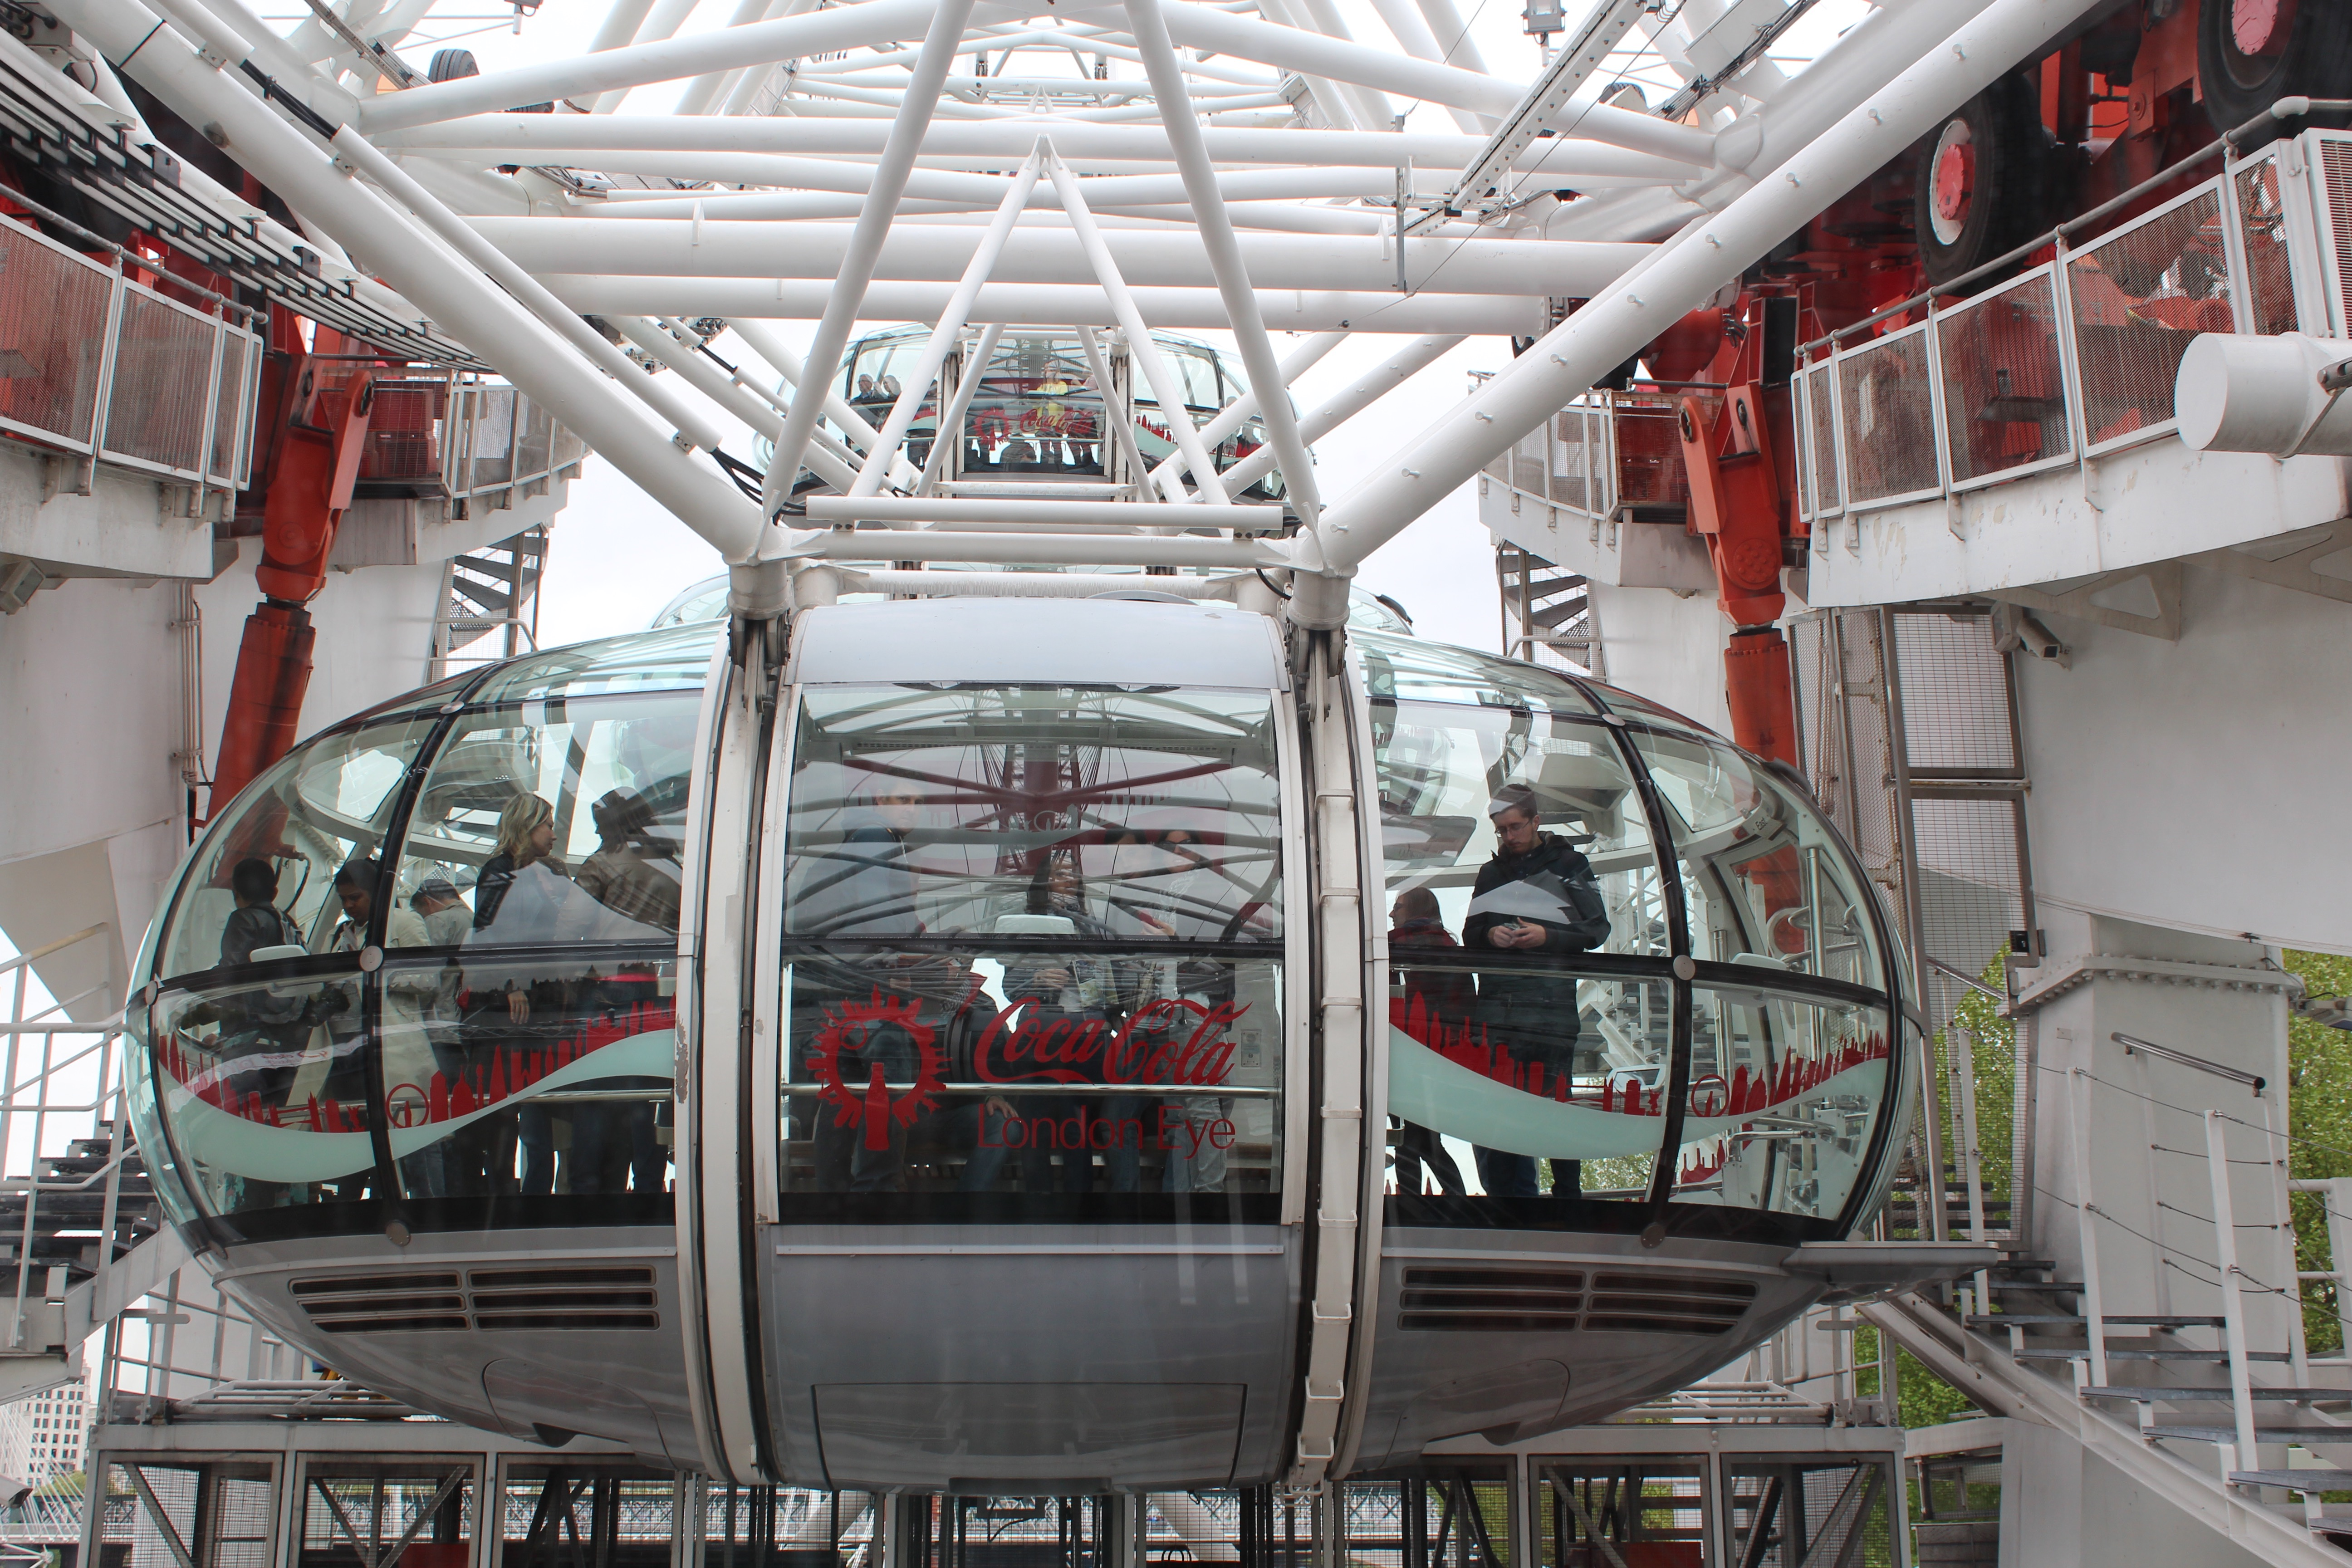 Justin on the London Eye